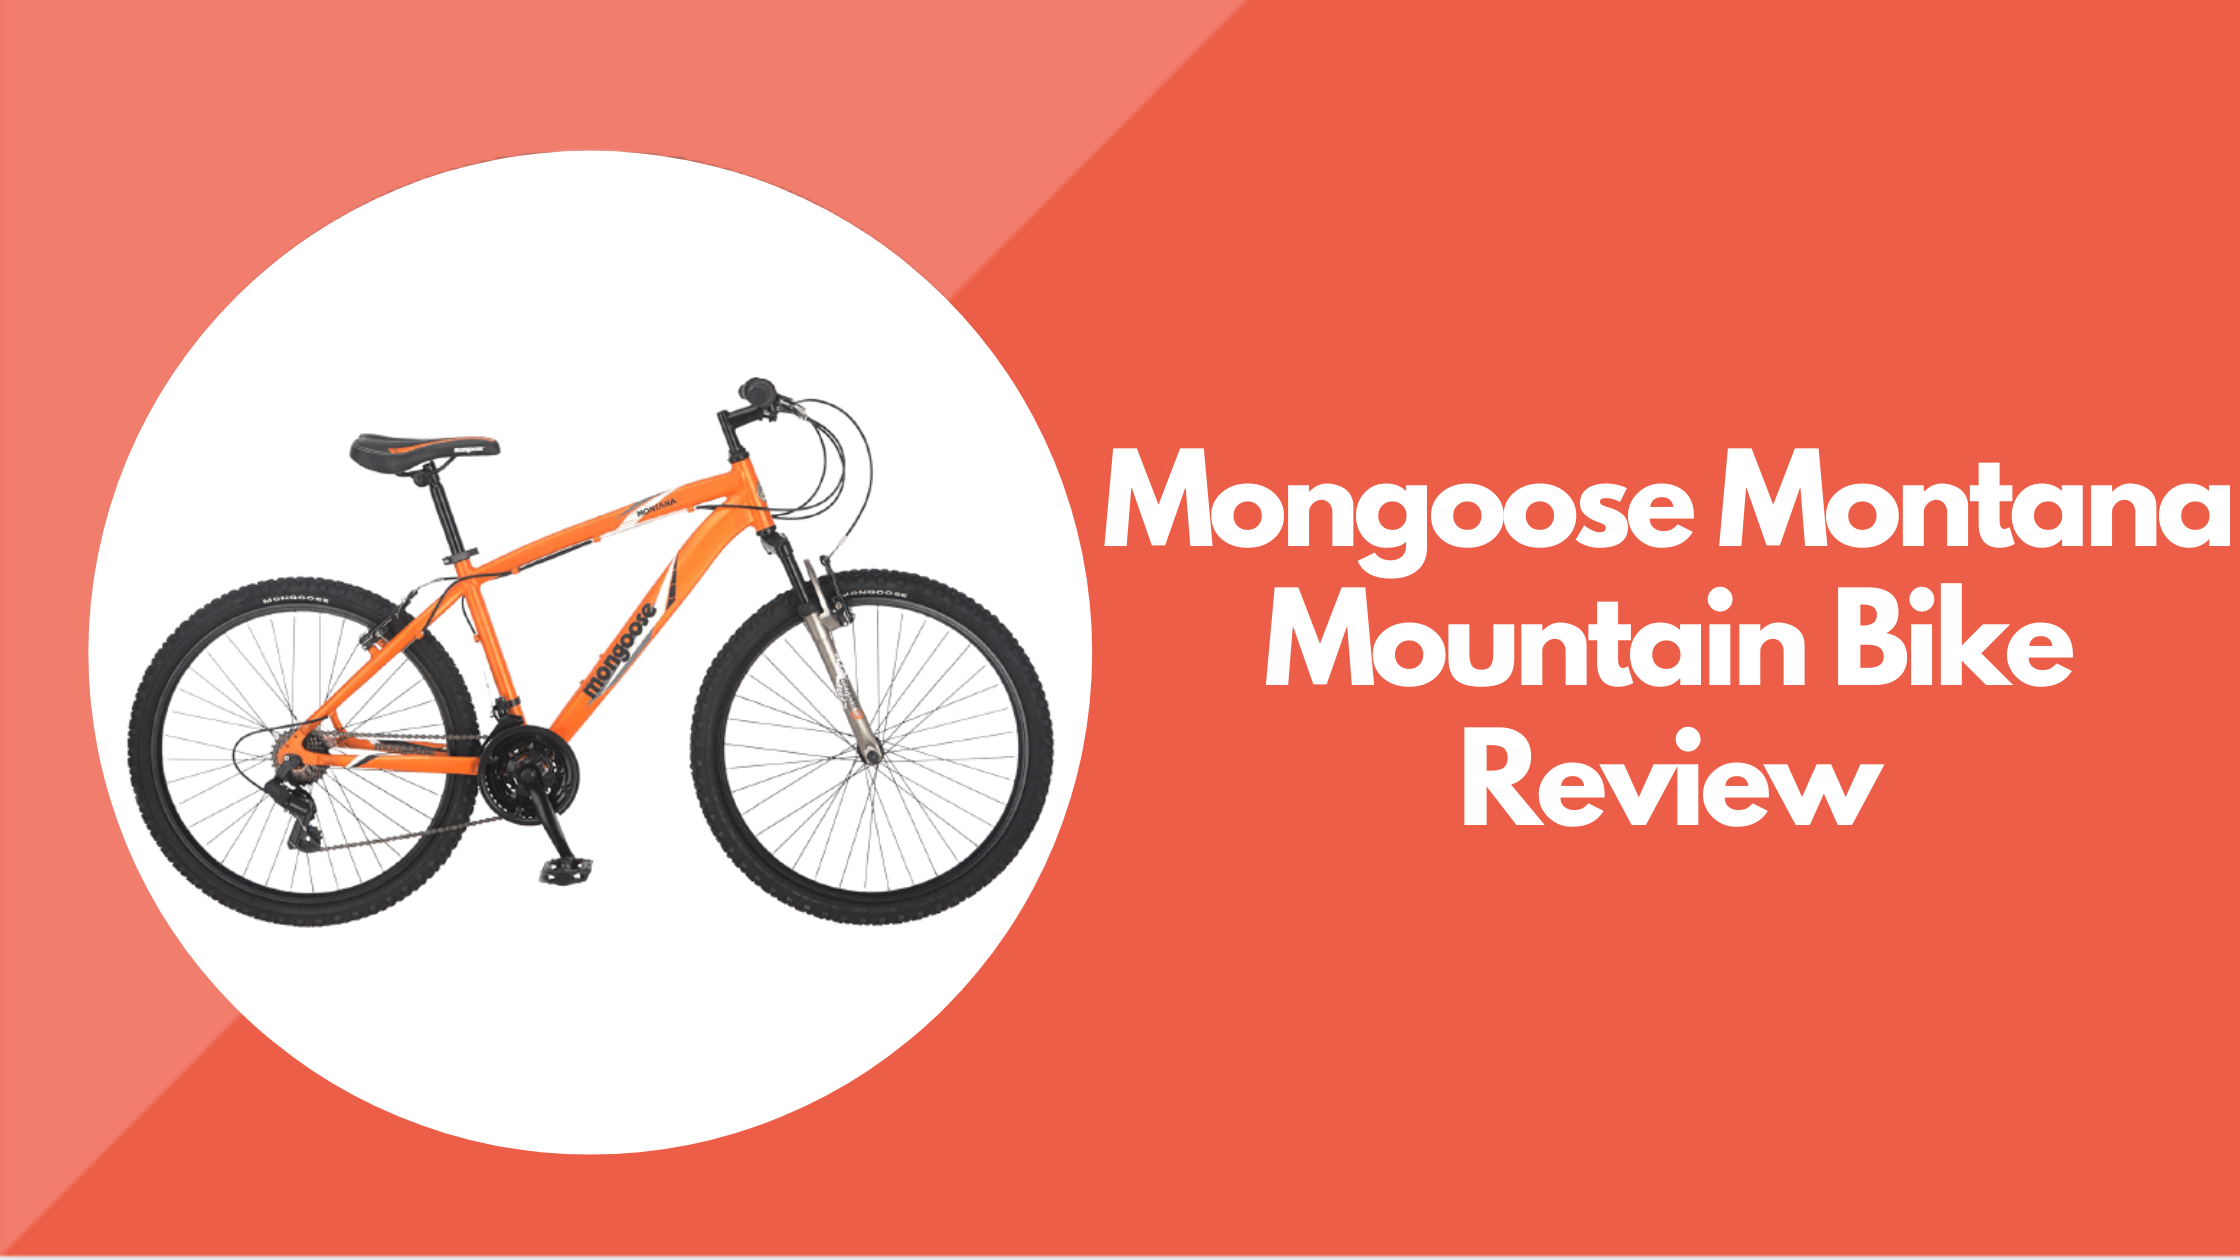 Mongoose Montana Mountain Bike Review